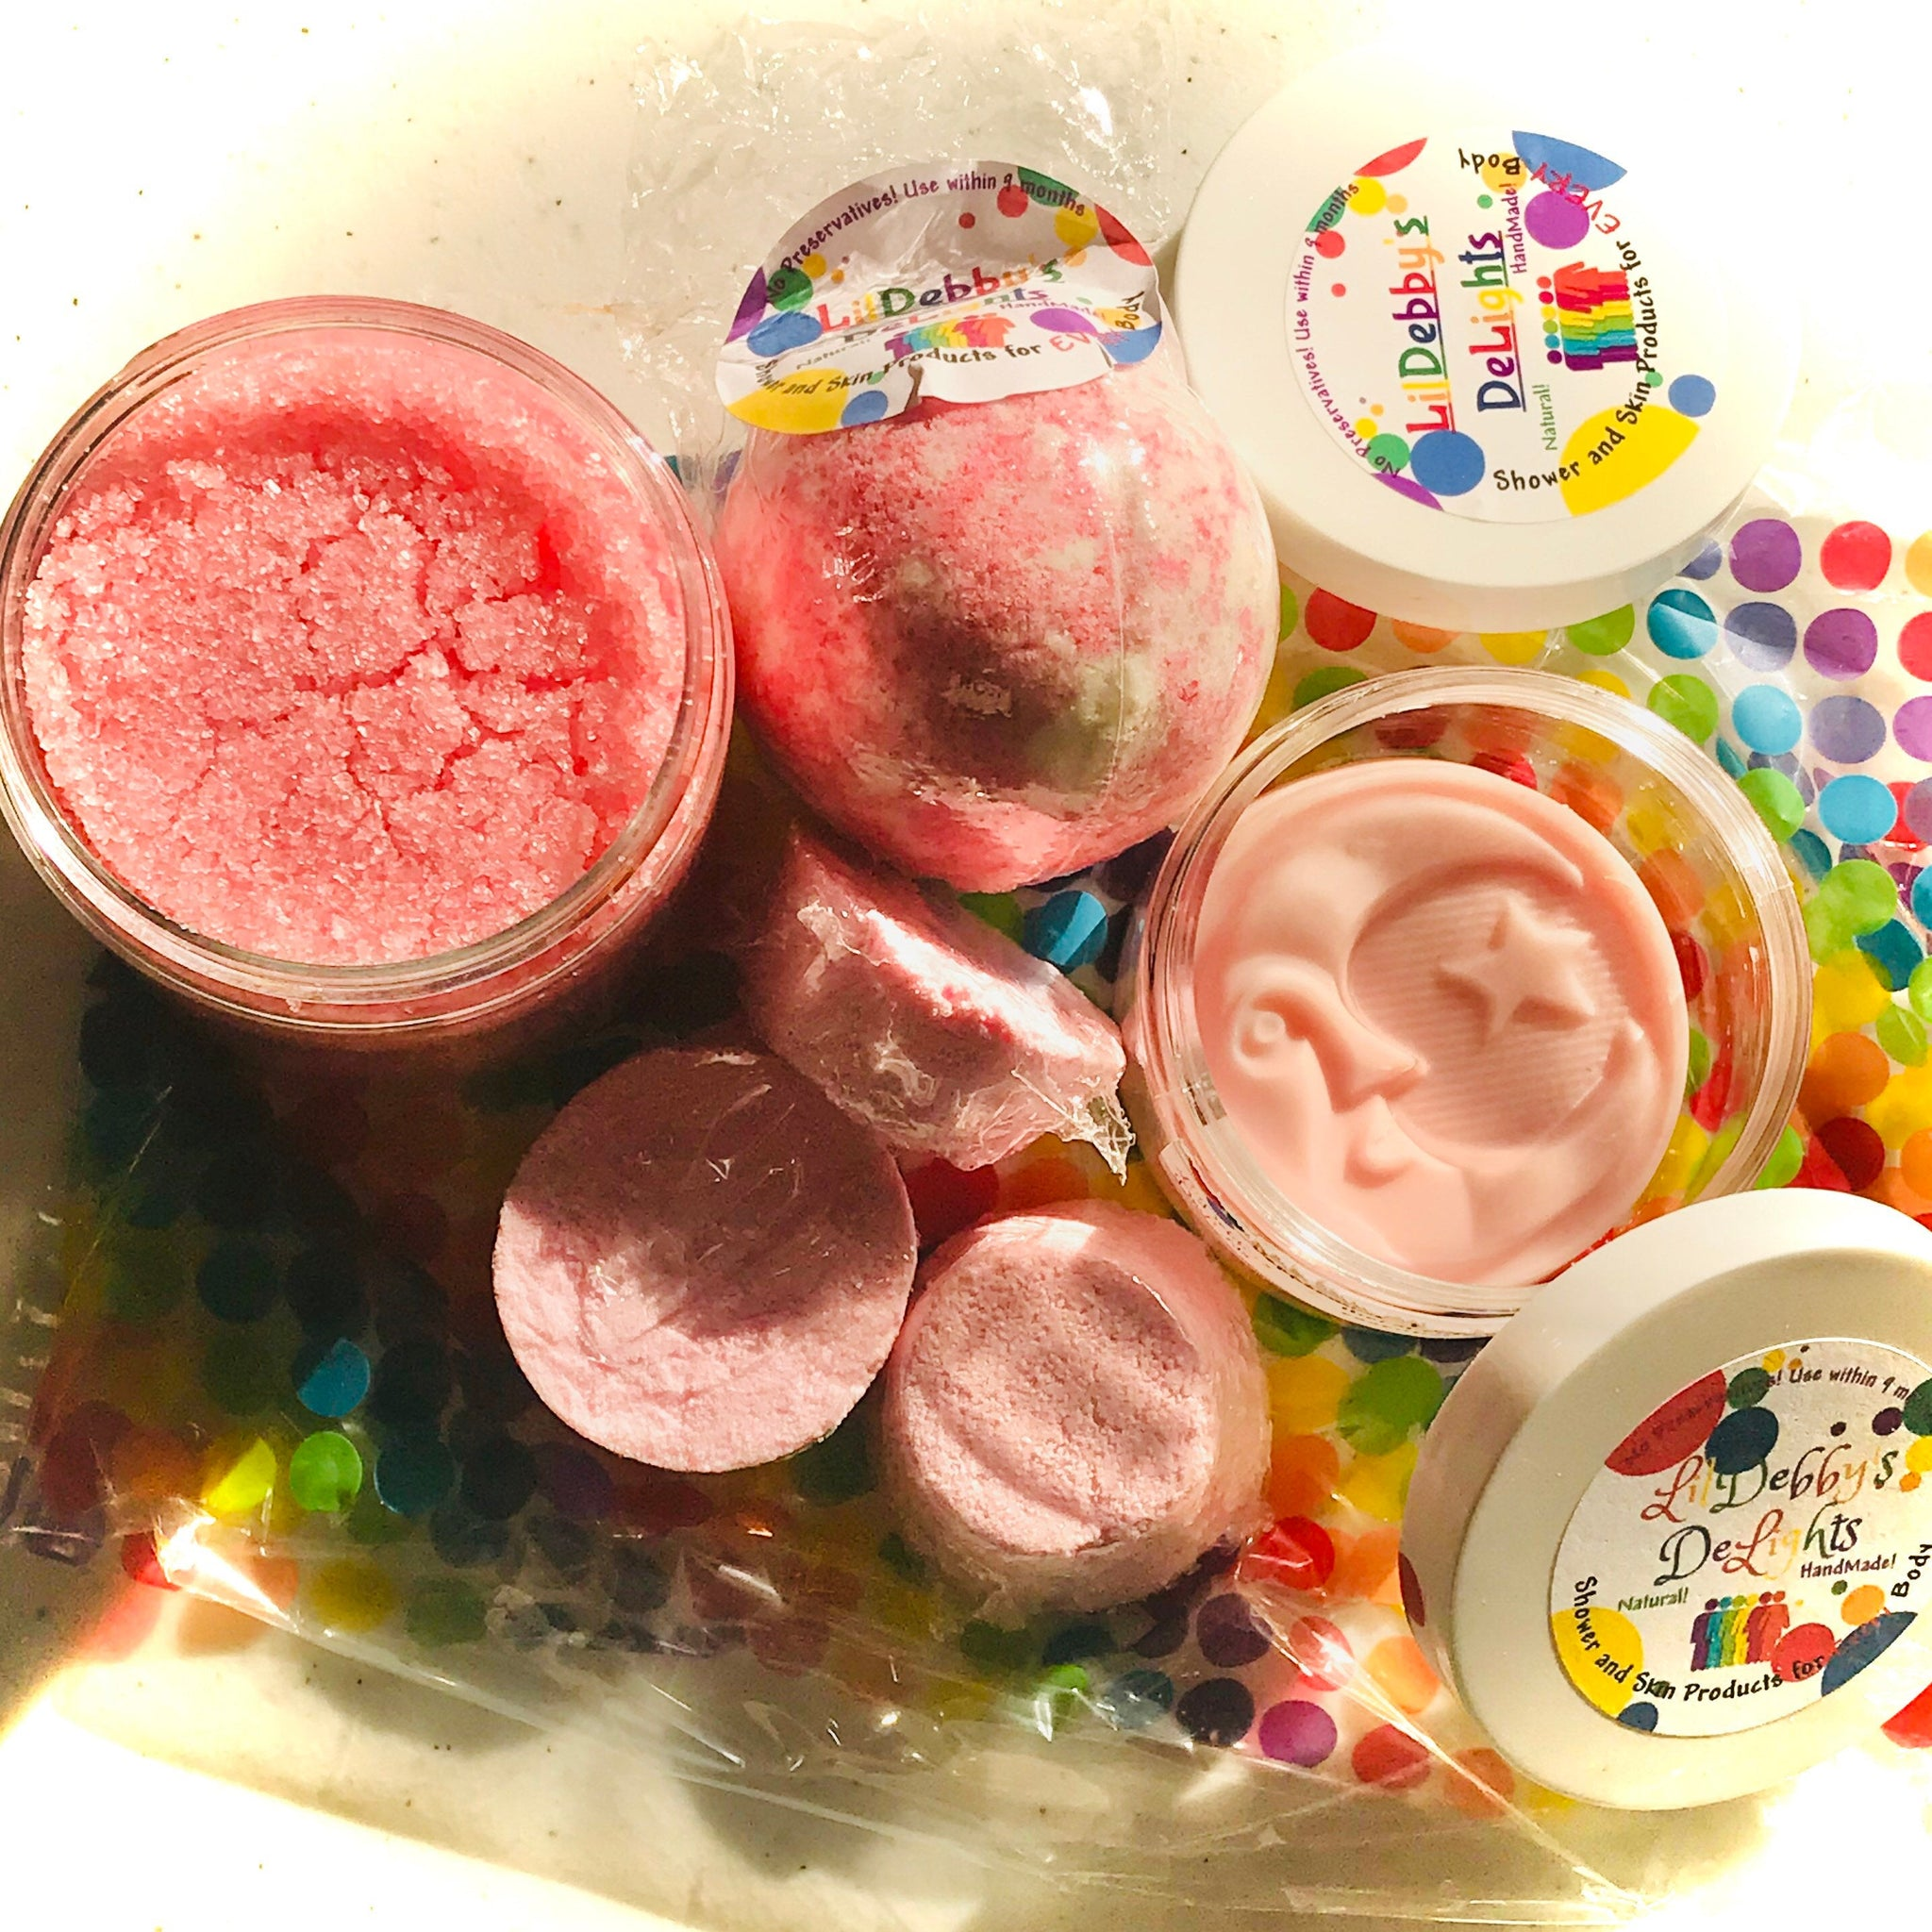 Pink ENERGY Spa gift set including Treasure Bath Bomb, Shower Steamers, Sugar Scrub AND Lotion Bar with FREE shipping.